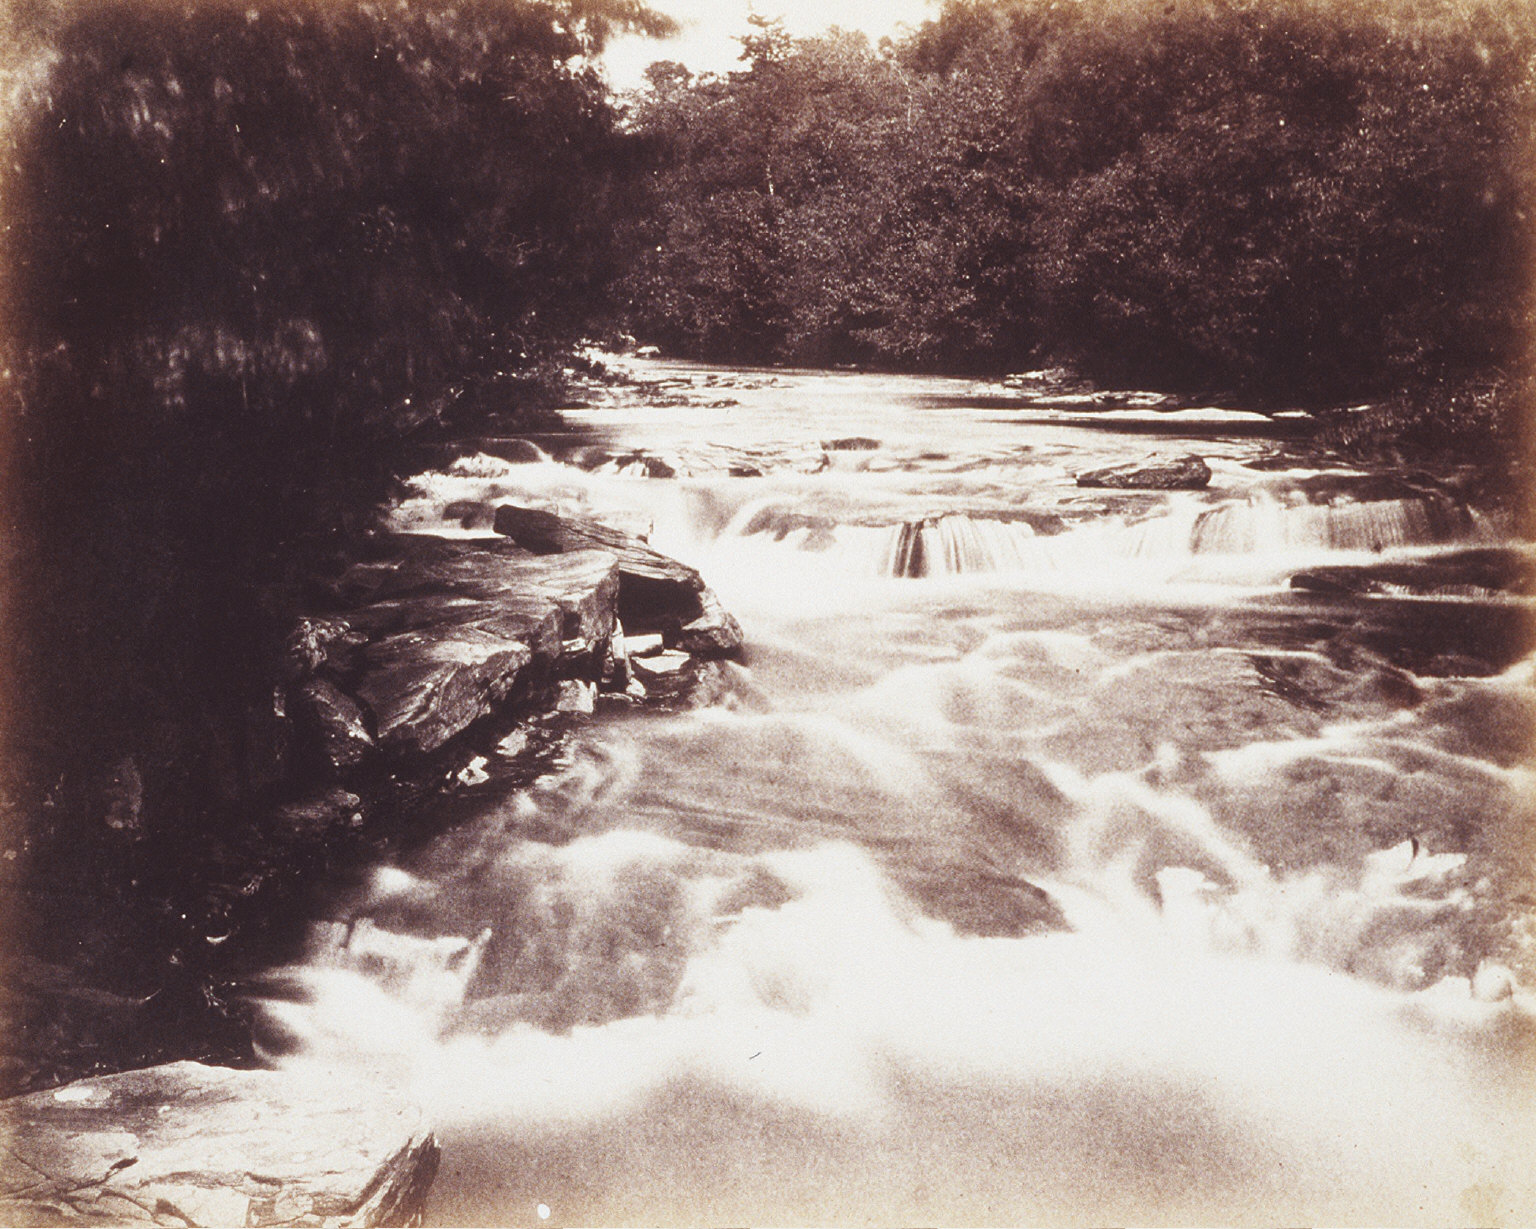 River Dulais. Near Ynysygerwn, one of his homes in South Wales. 1852. Calotype.